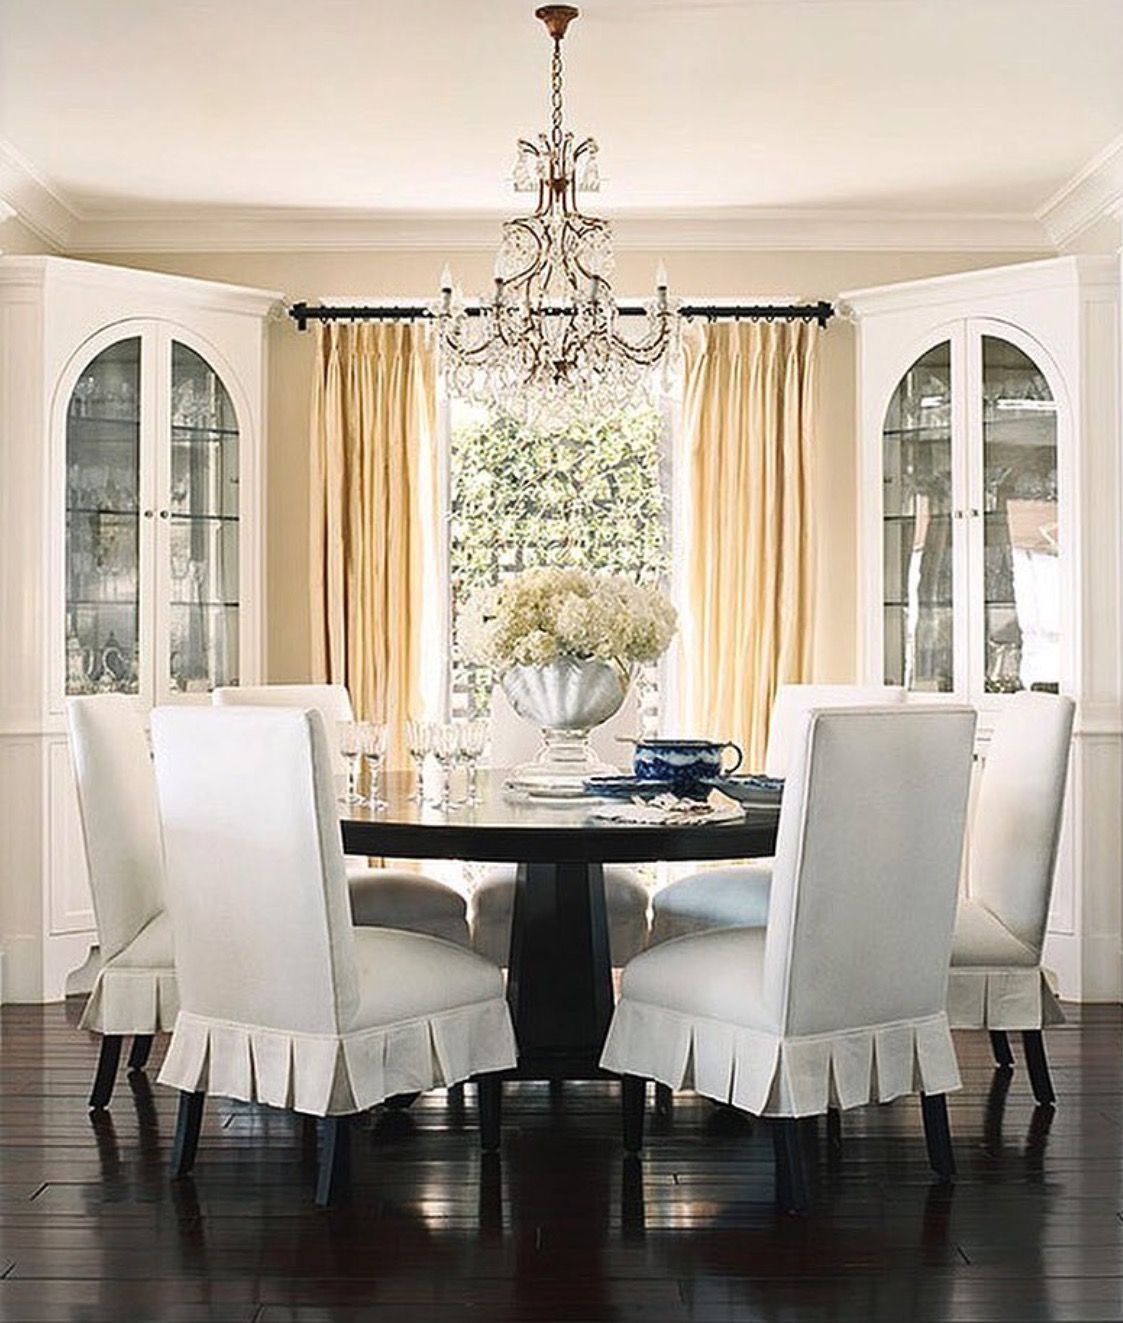 Curved Top Dining Room Chair Covers corner arched builtins flanking window but have open top no glass